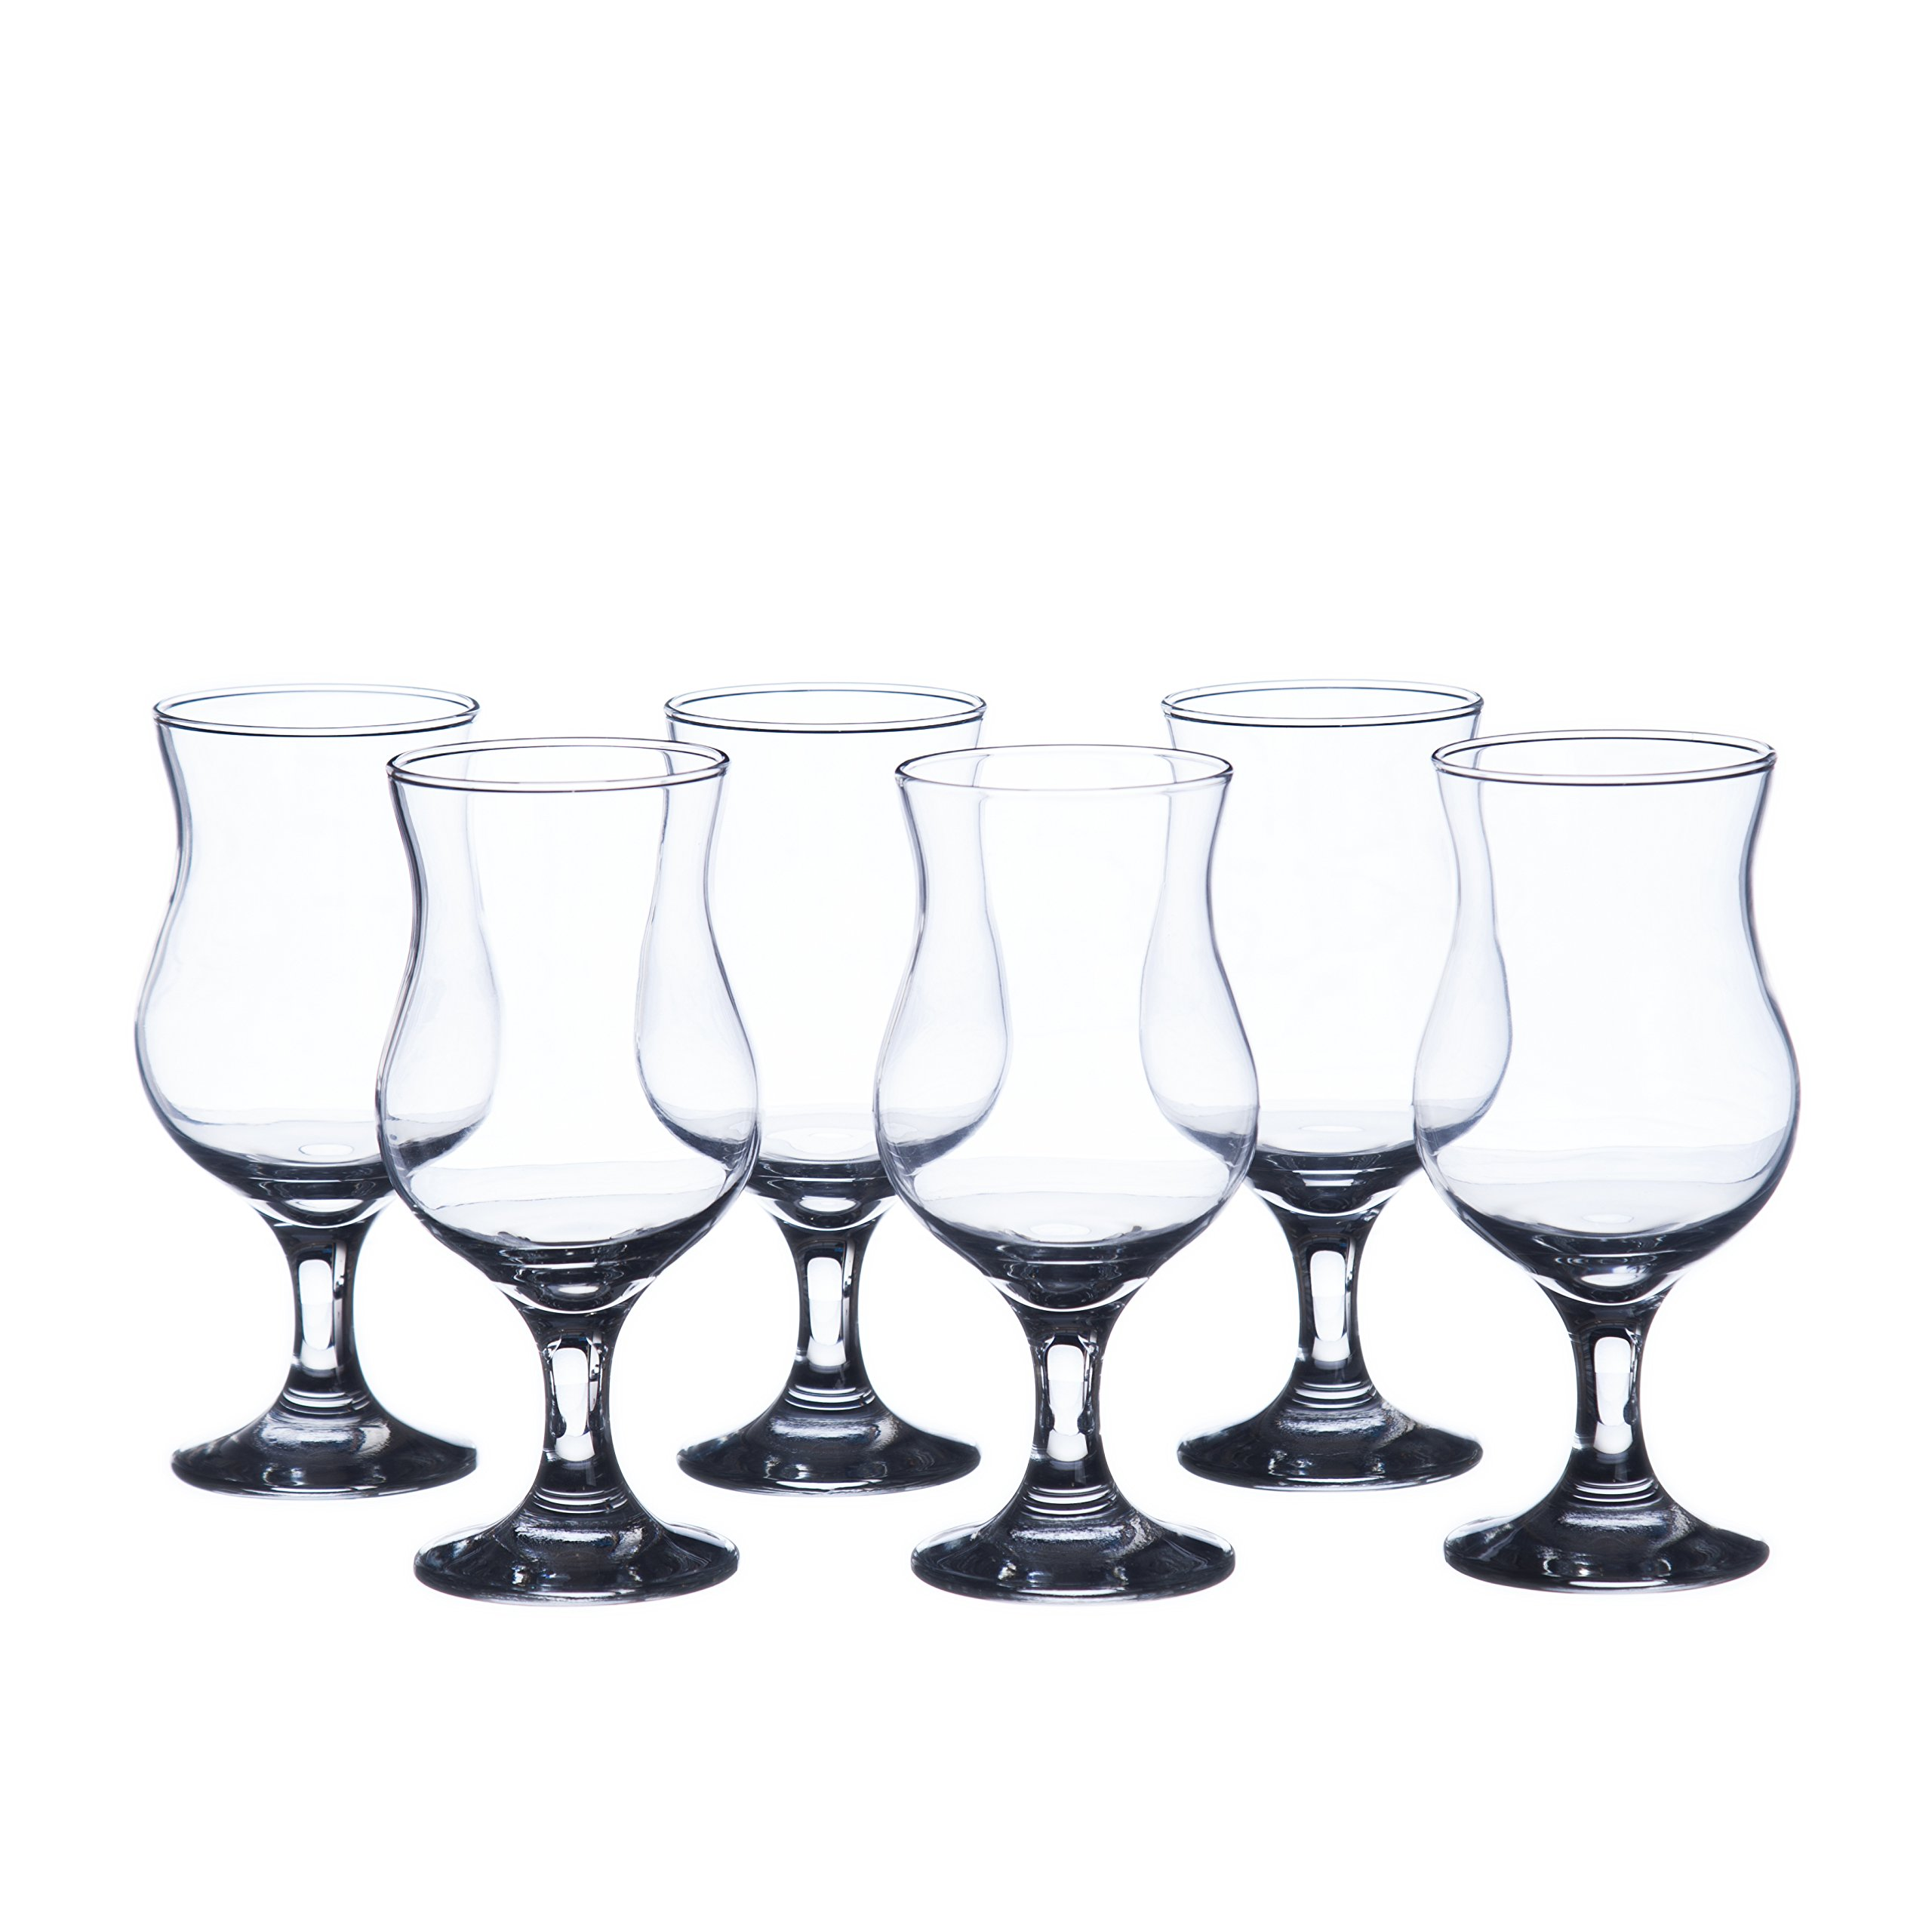 MADERIA Hurricane Cocktails Glasses Sets, 13 oz. (6-piece set, 12-piece set), Durable Tempered Glass, Restaurant&Hotel Quality (12) by Pasabache